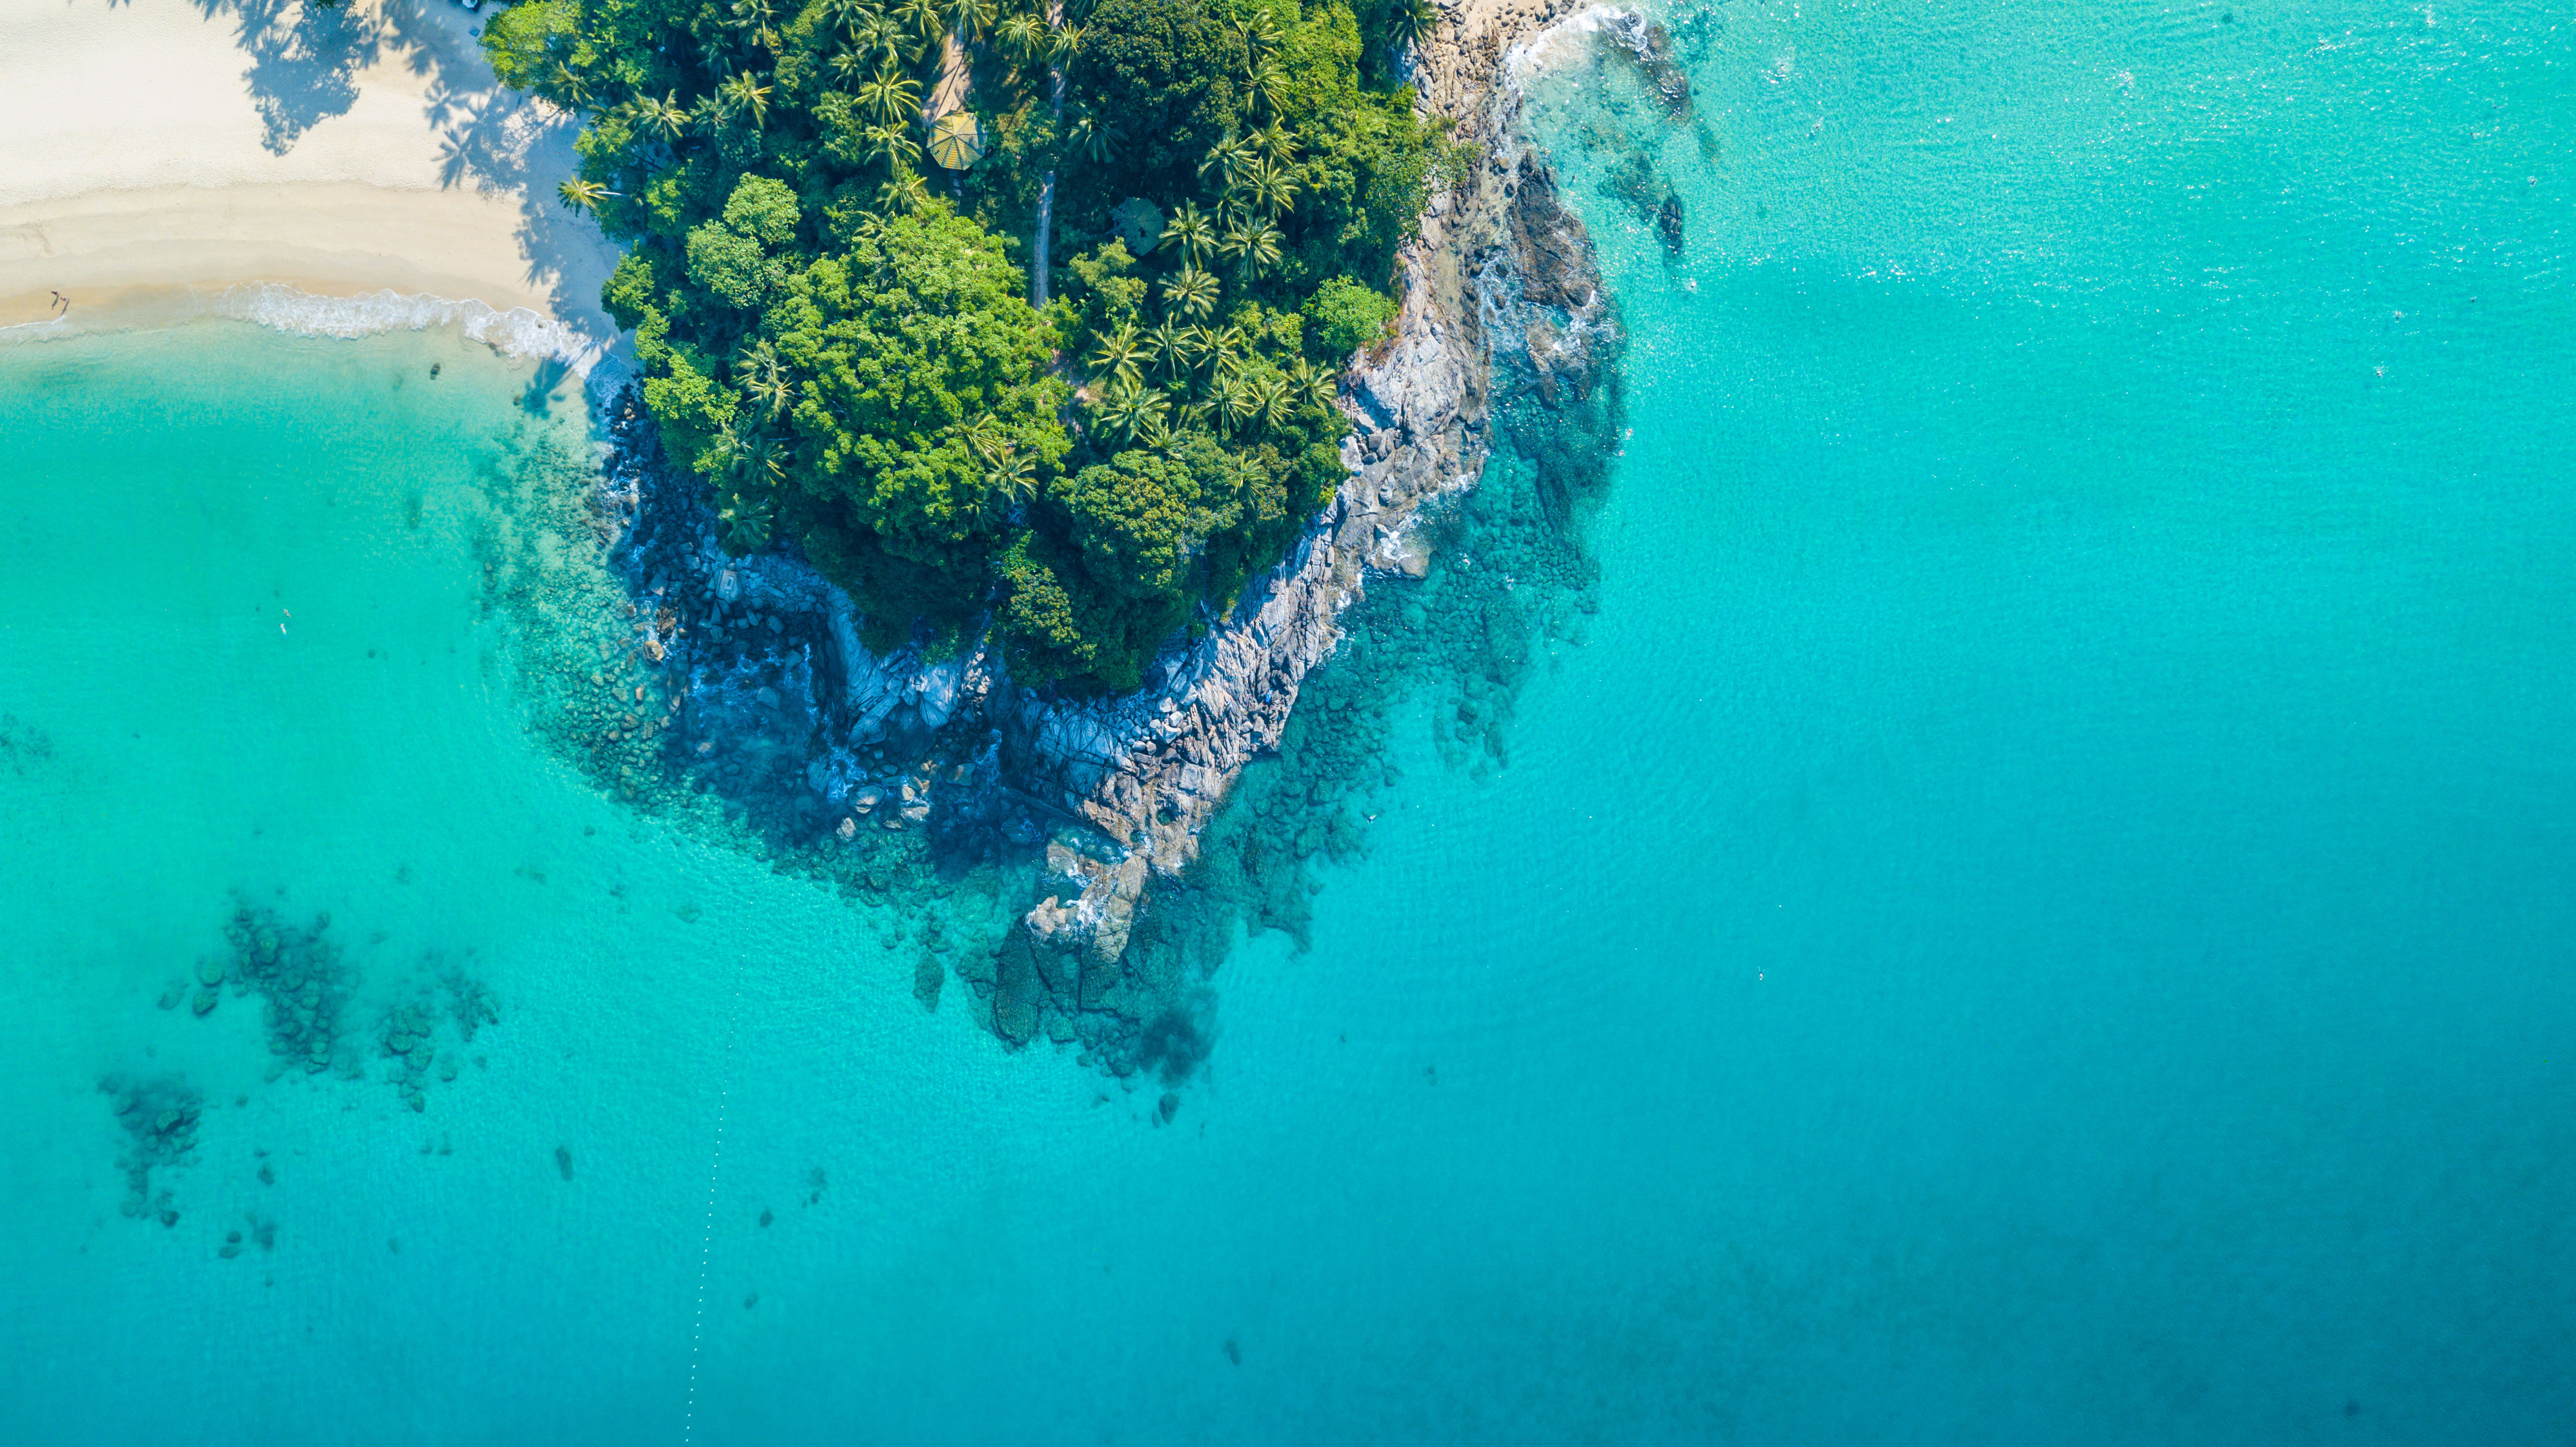 Tropical island outcrop with rocks and palm trees, surrounded by turquoise waters in South East Asia.